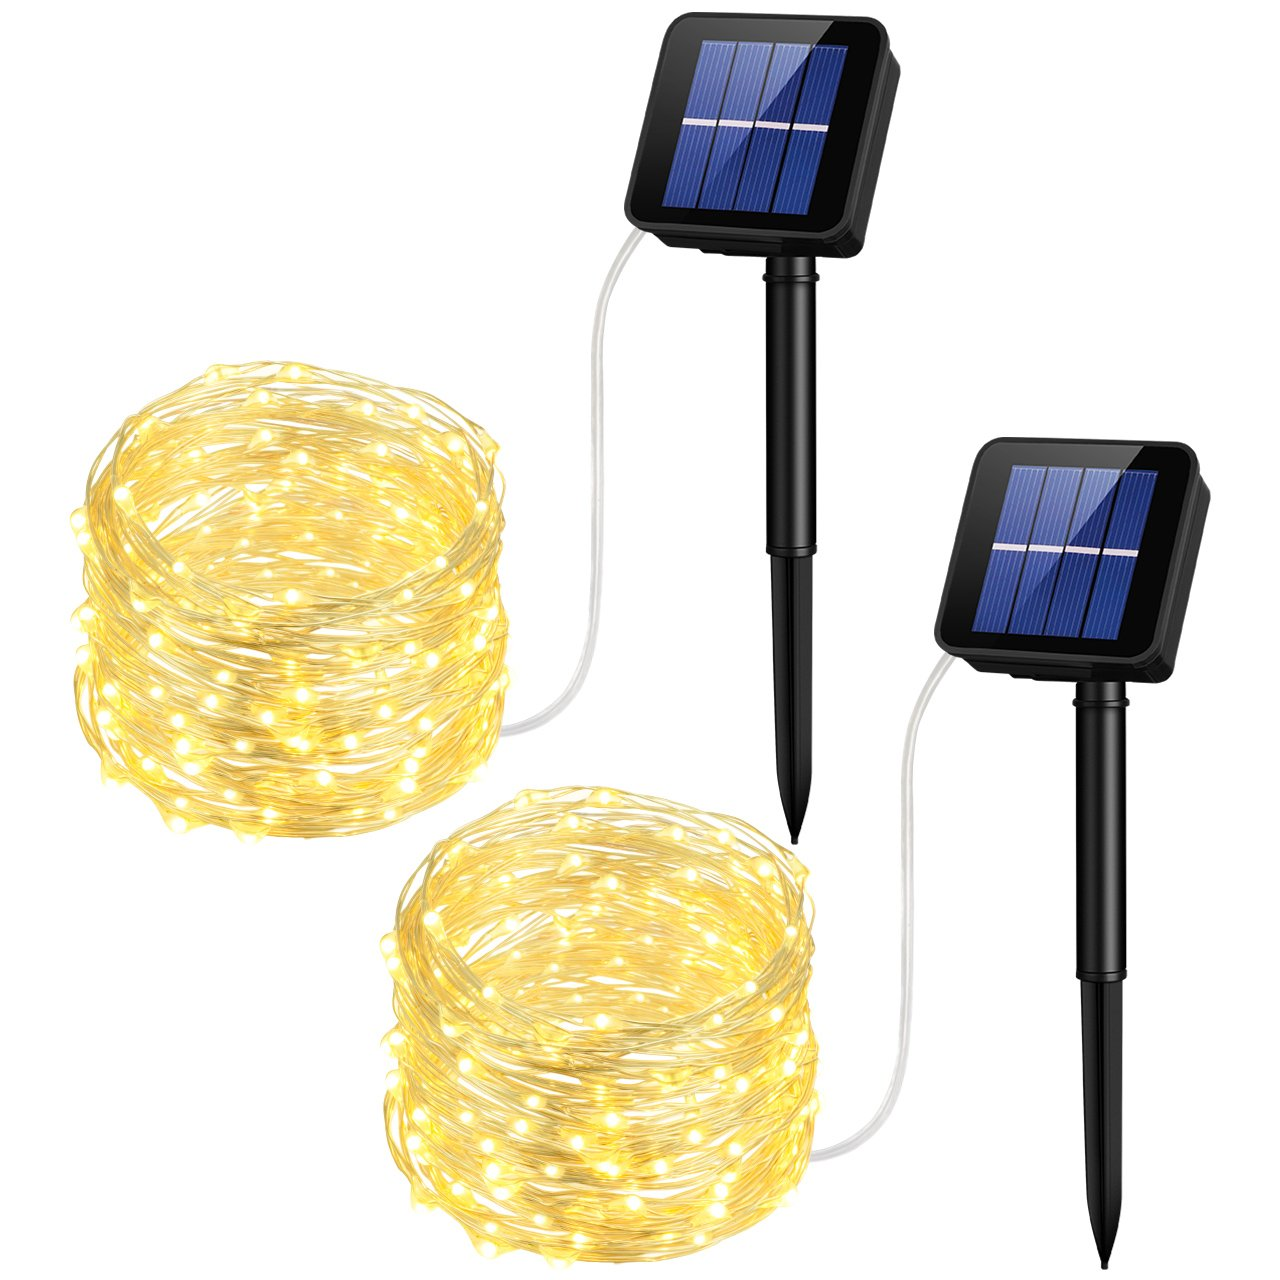 Top 10 Best Solar-Powered String Lights